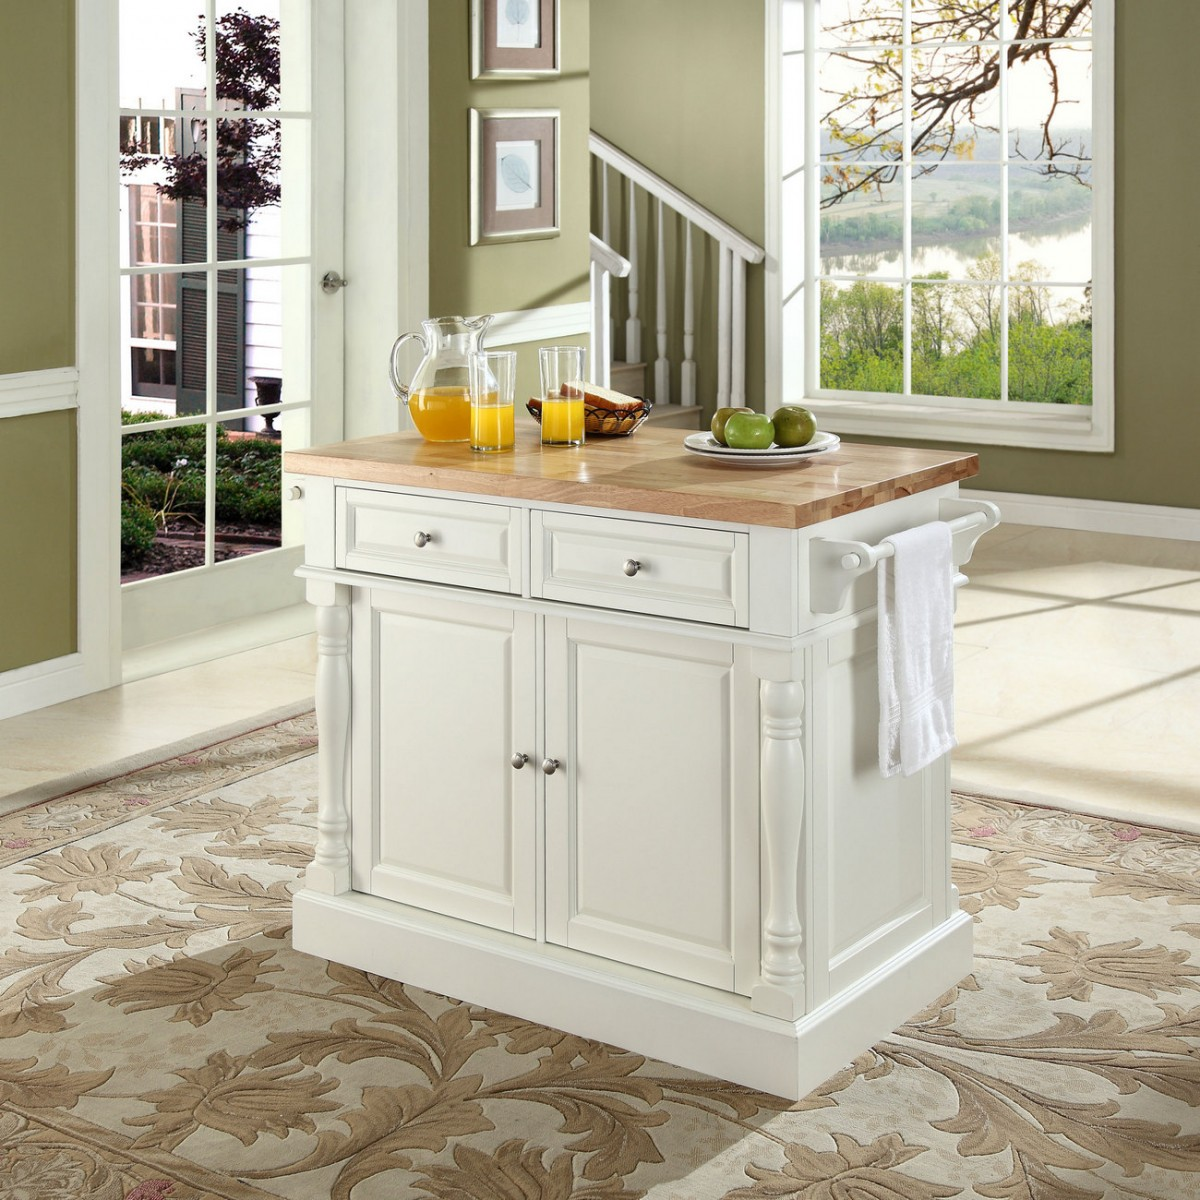 crosley butcher block top kitchen island crosley brands oxford butcher block top kitchen island in white finish crosley kf30006wh 9246